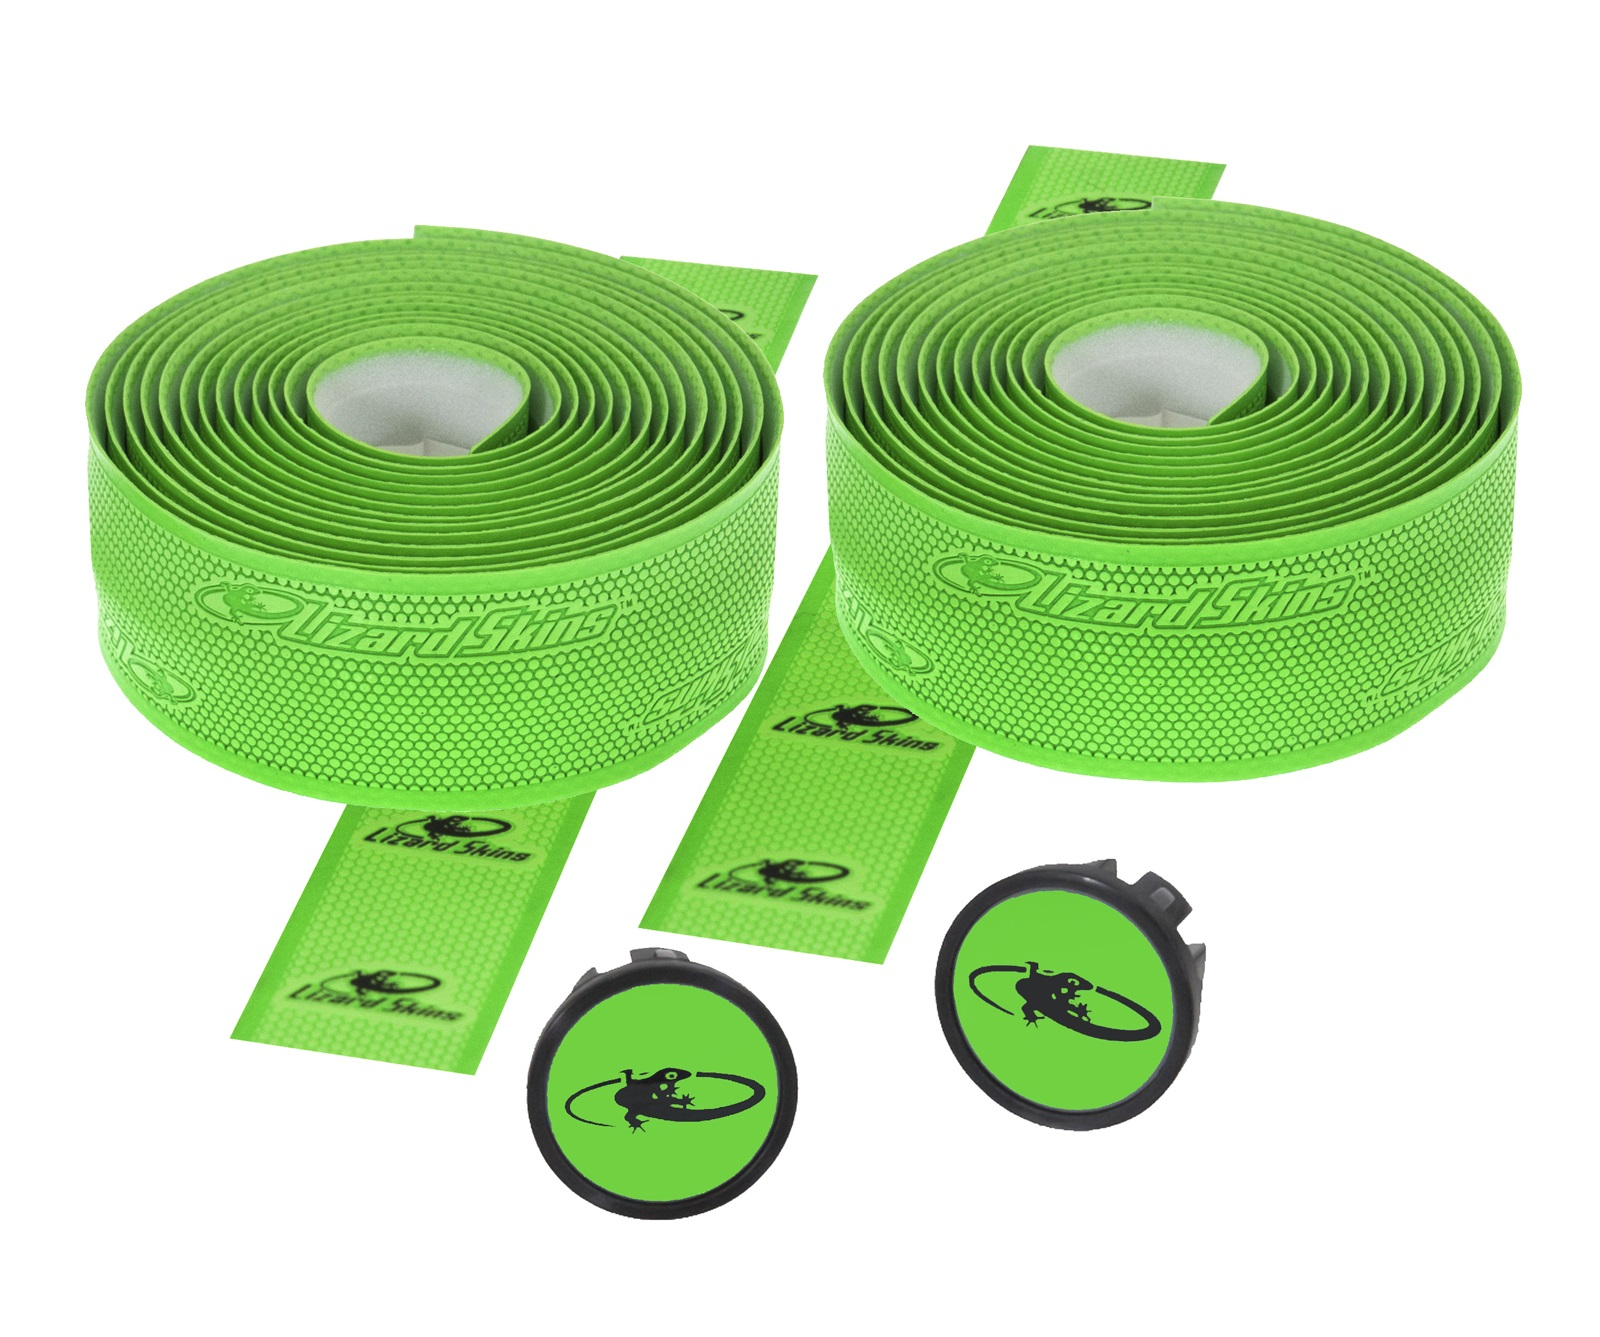 Lizardskins DSP 1.8 Handlebar Tape 1.8x208mm - Green